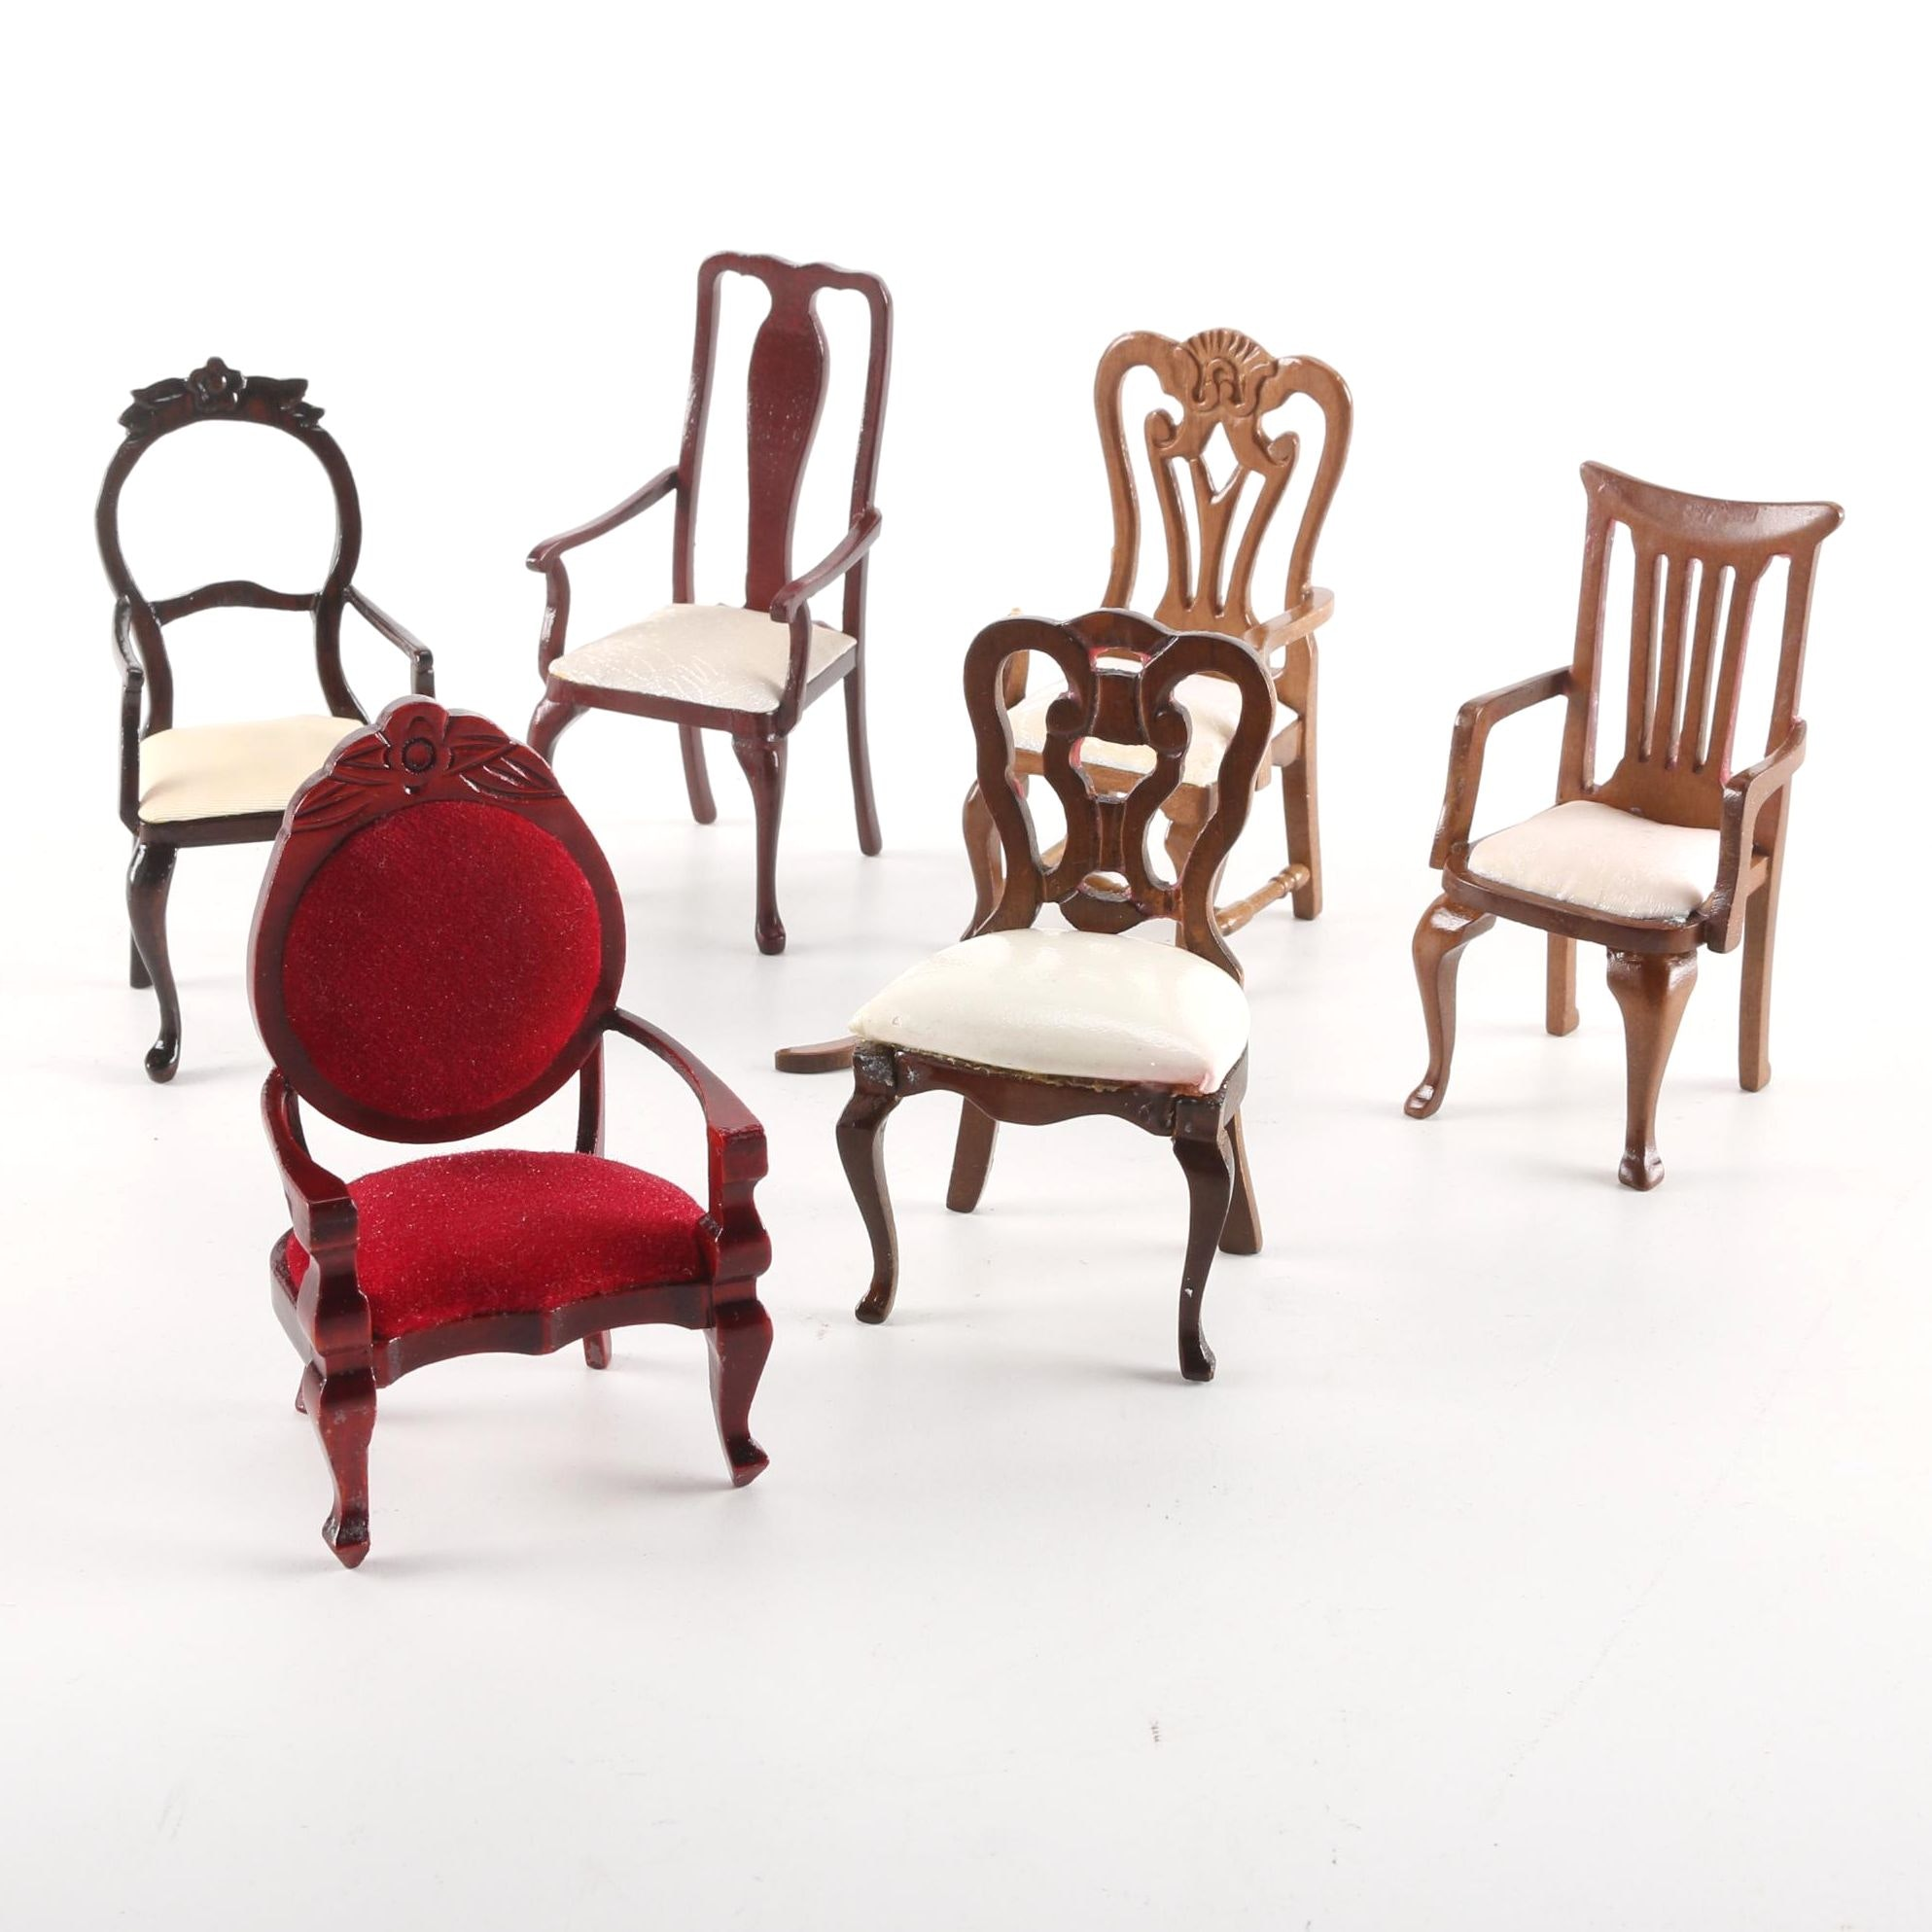 Vintage Dollhouse Chairs Featuring Classics